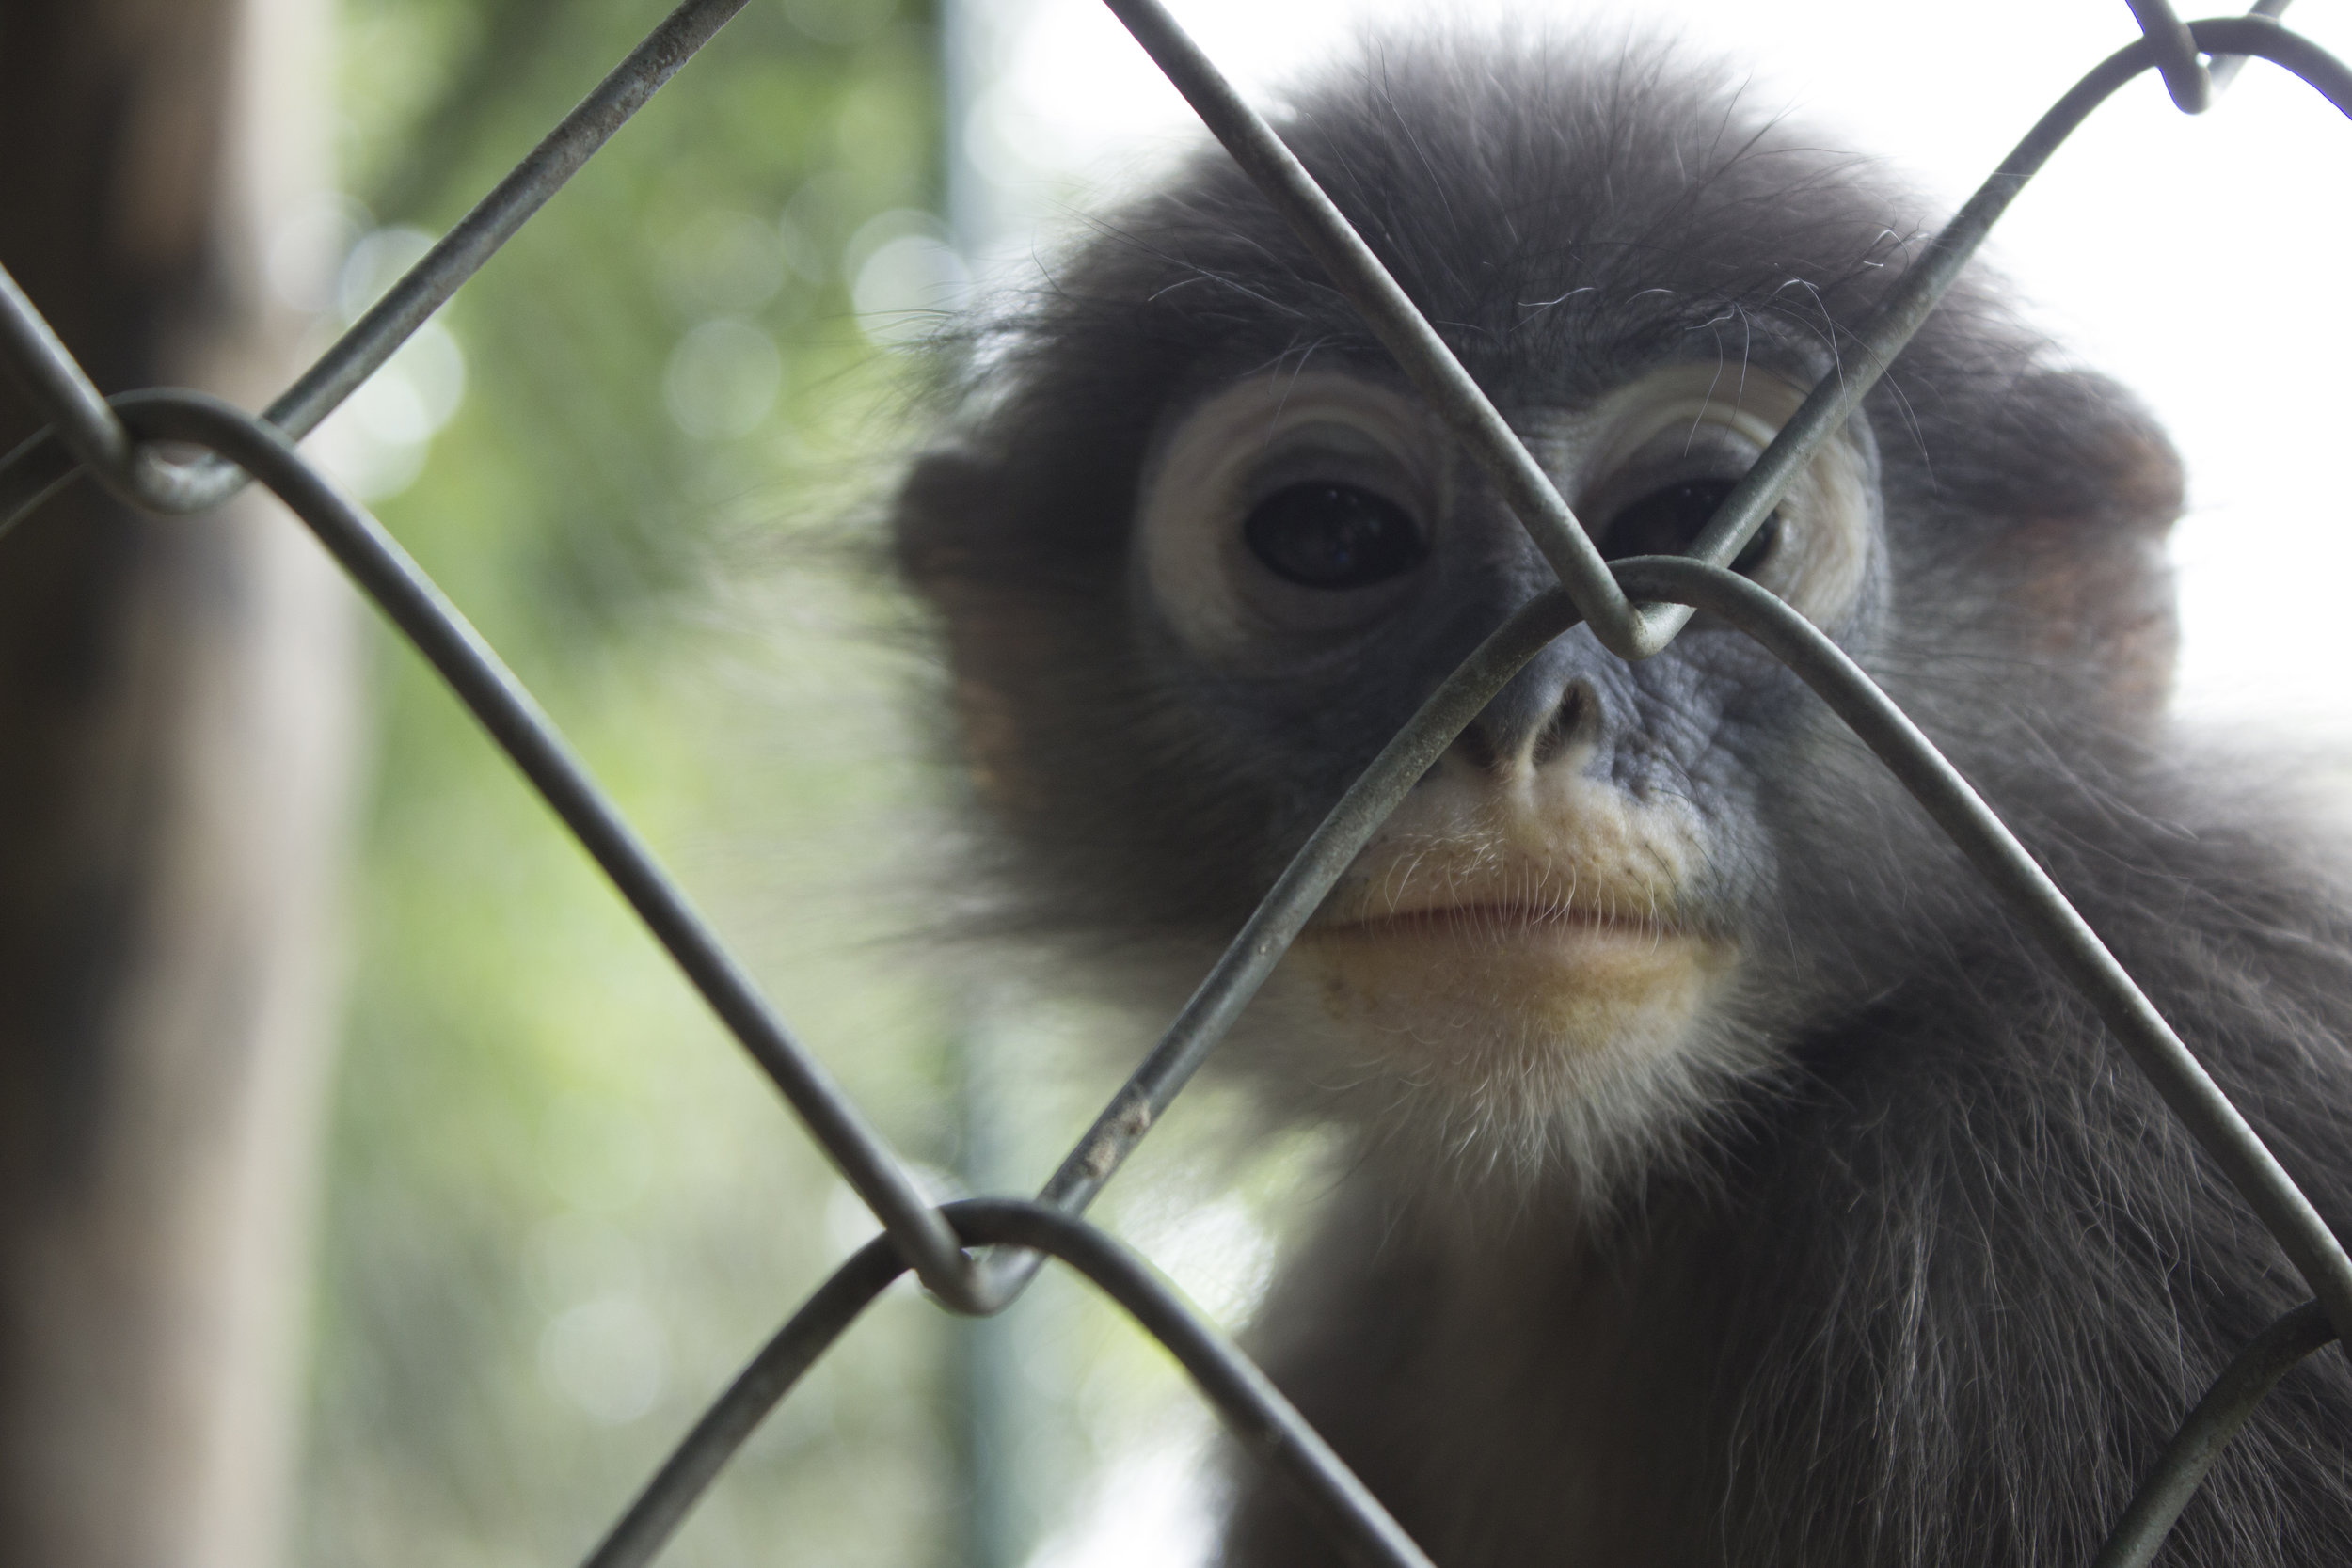 Baby langur monkeys required additional enrichments, like sunflower seeds stuck into corn cobs, to stimulate their growing minds.